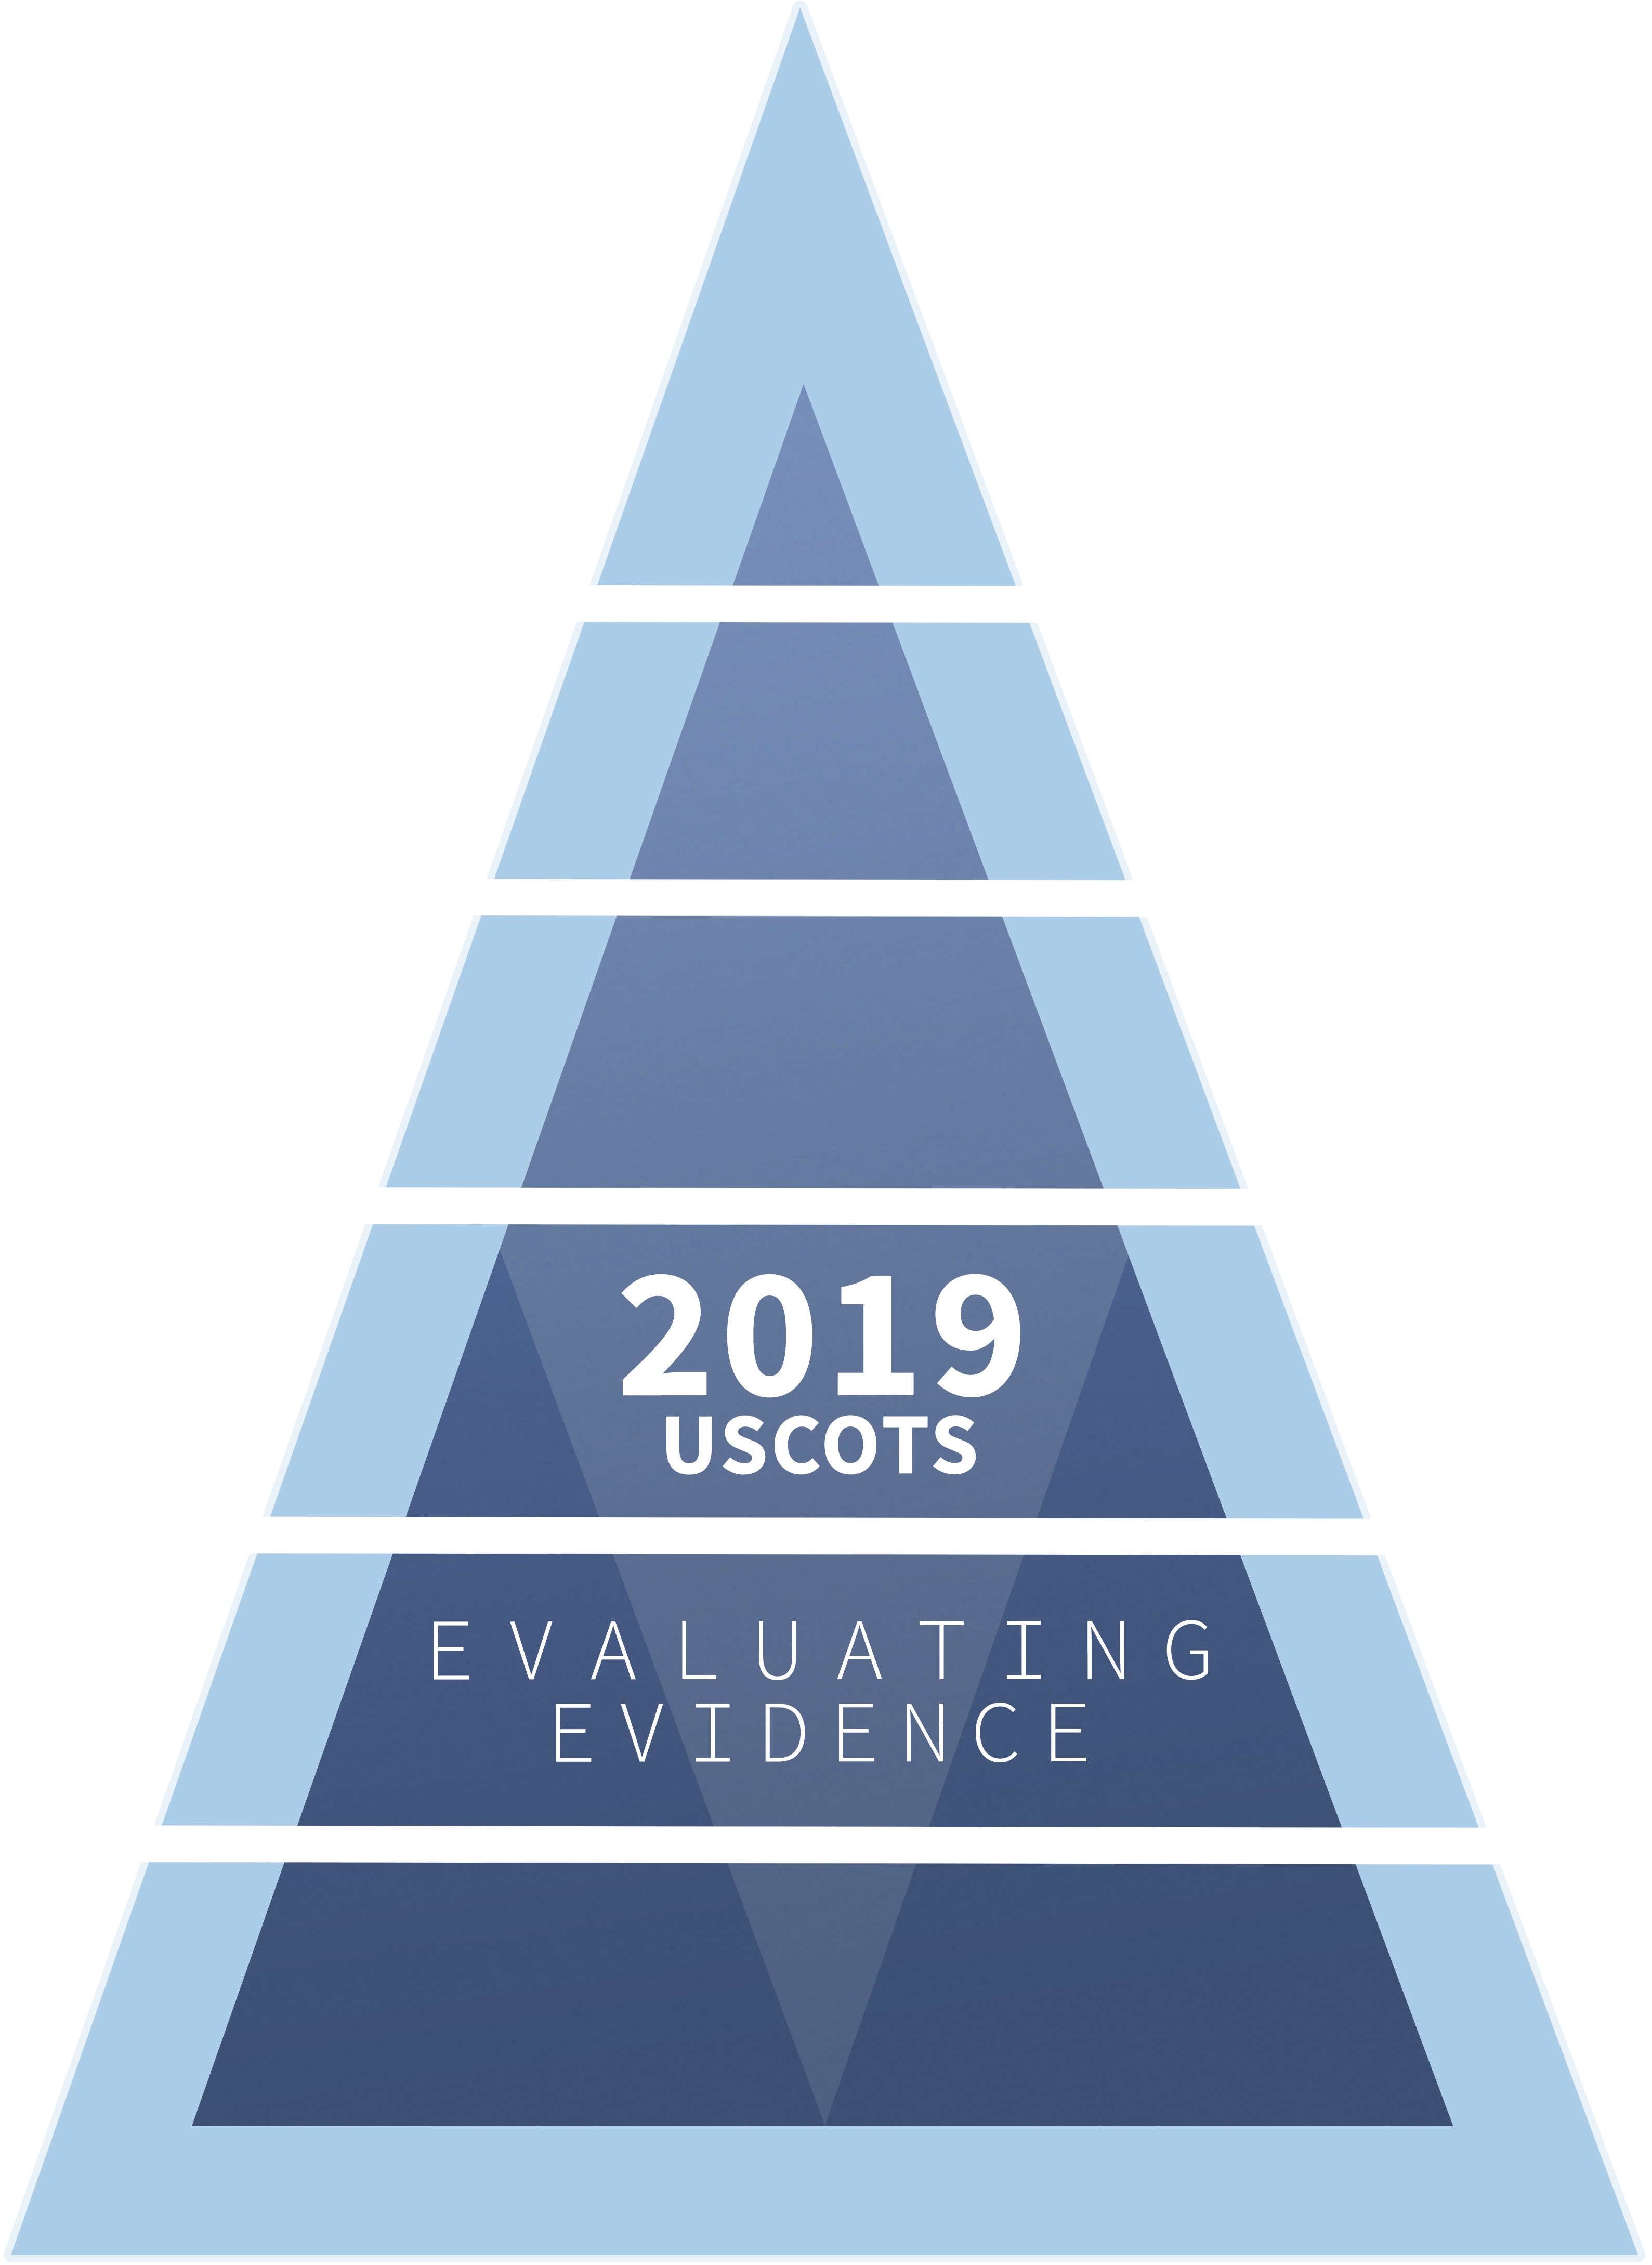 USCOTS 2019 - Evaluating Evidence